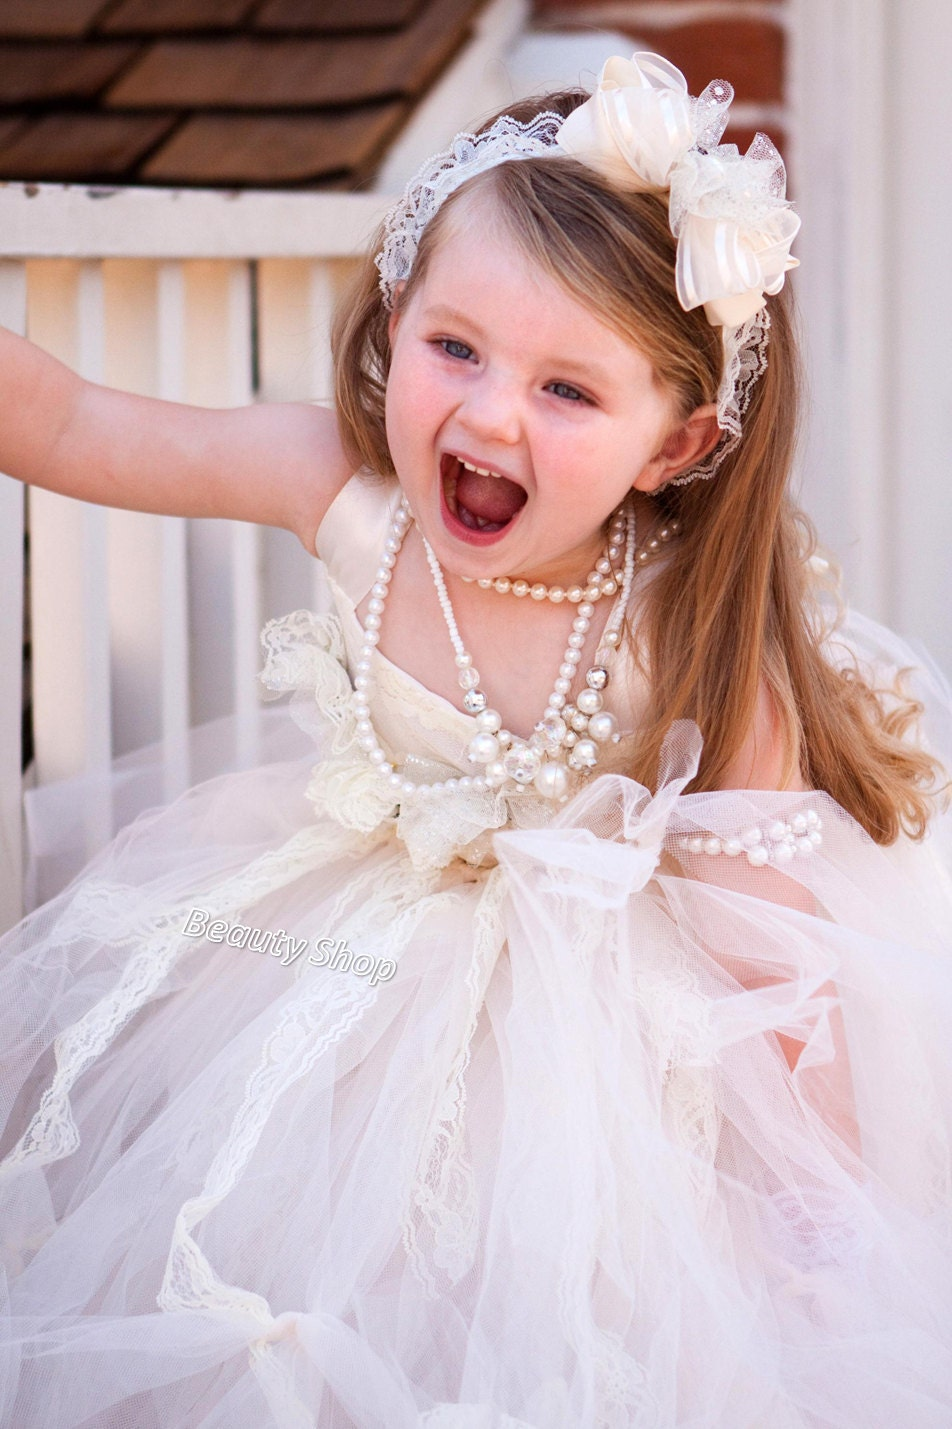 bride flower girl TuTu dress baby TuTu girl TuTu by BabyIsland